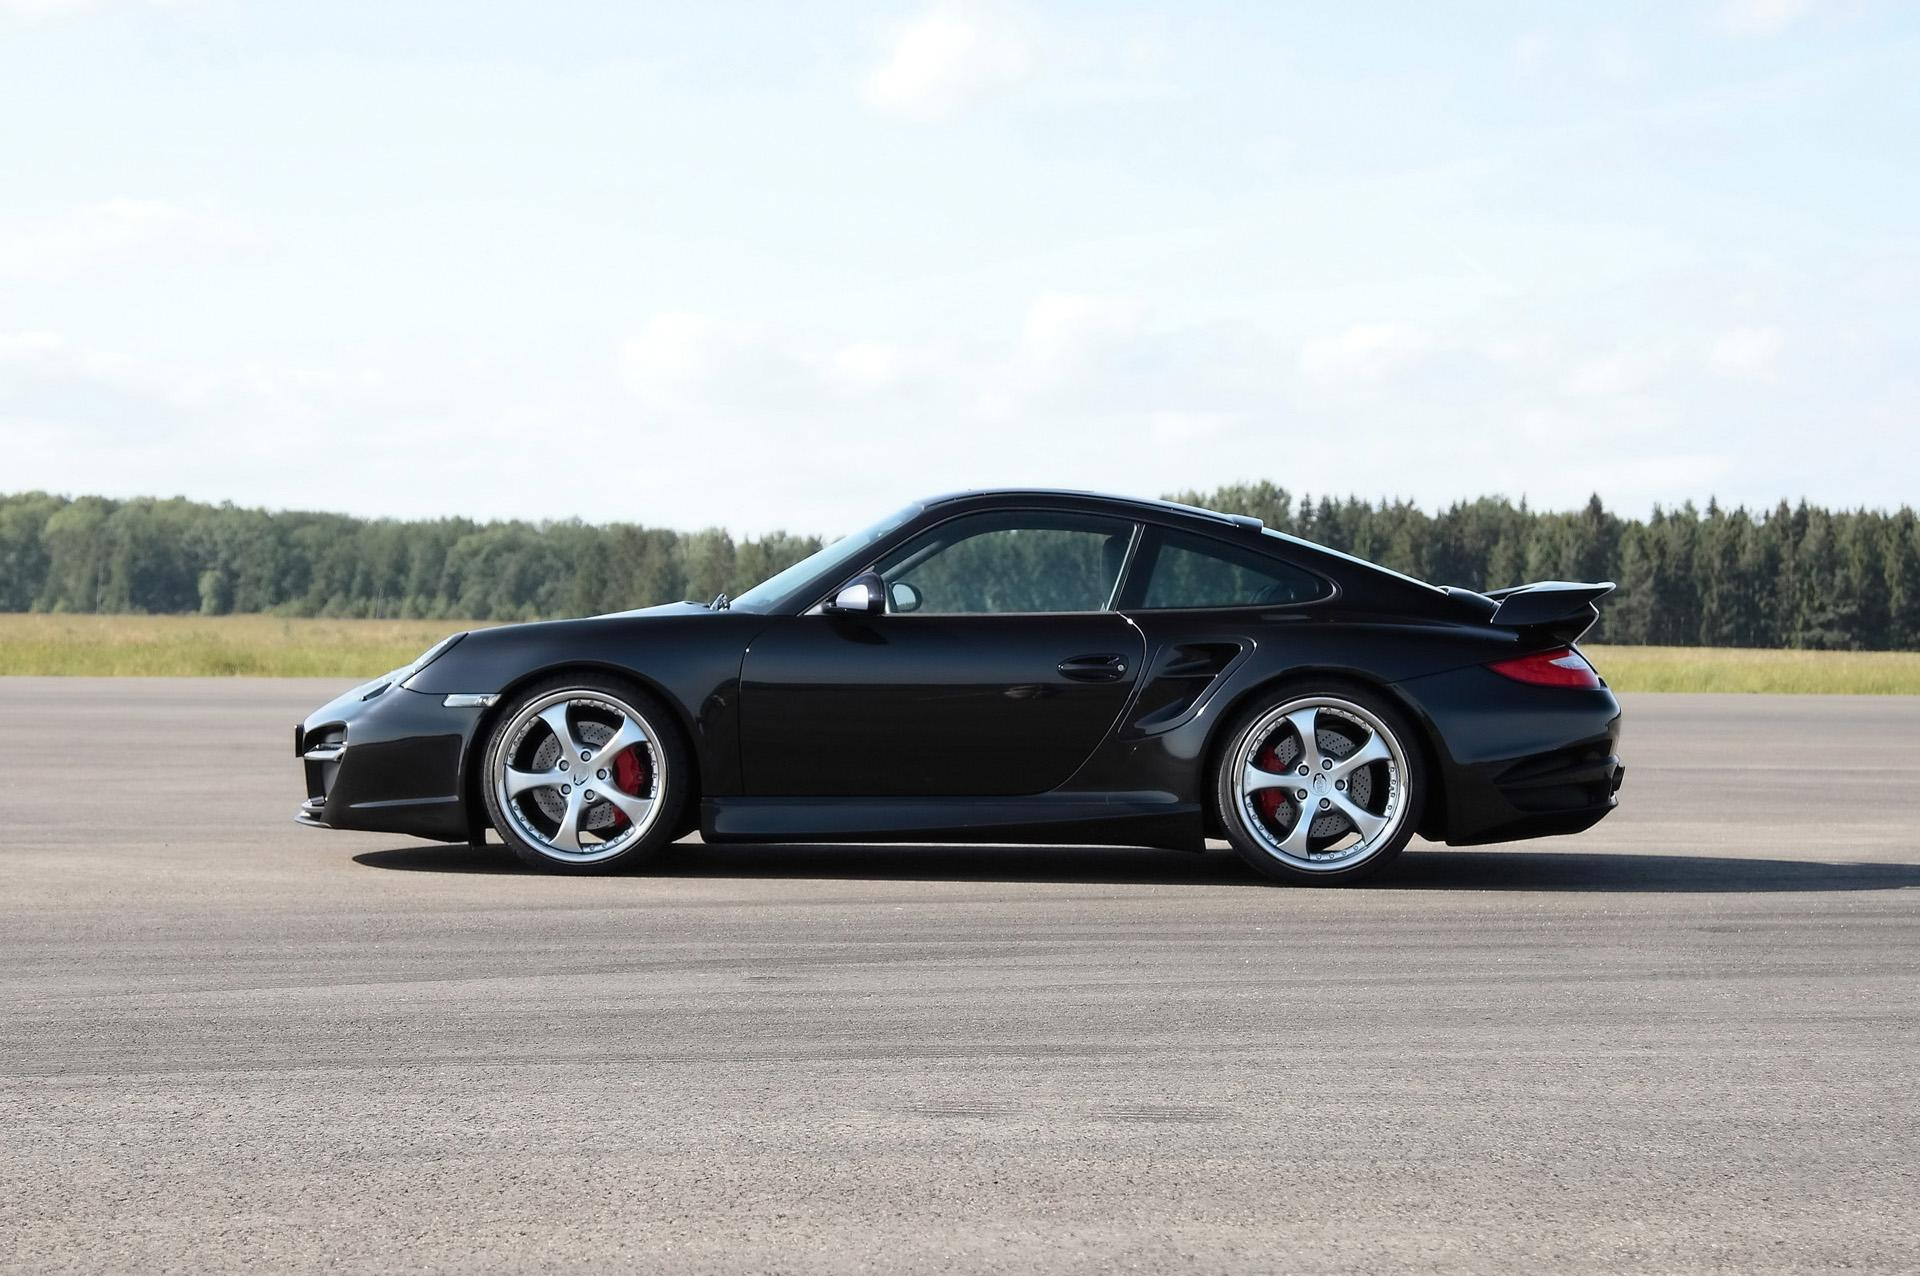 2010 Techart 911 Turbo Aerodynamic Kit Ii News And Information